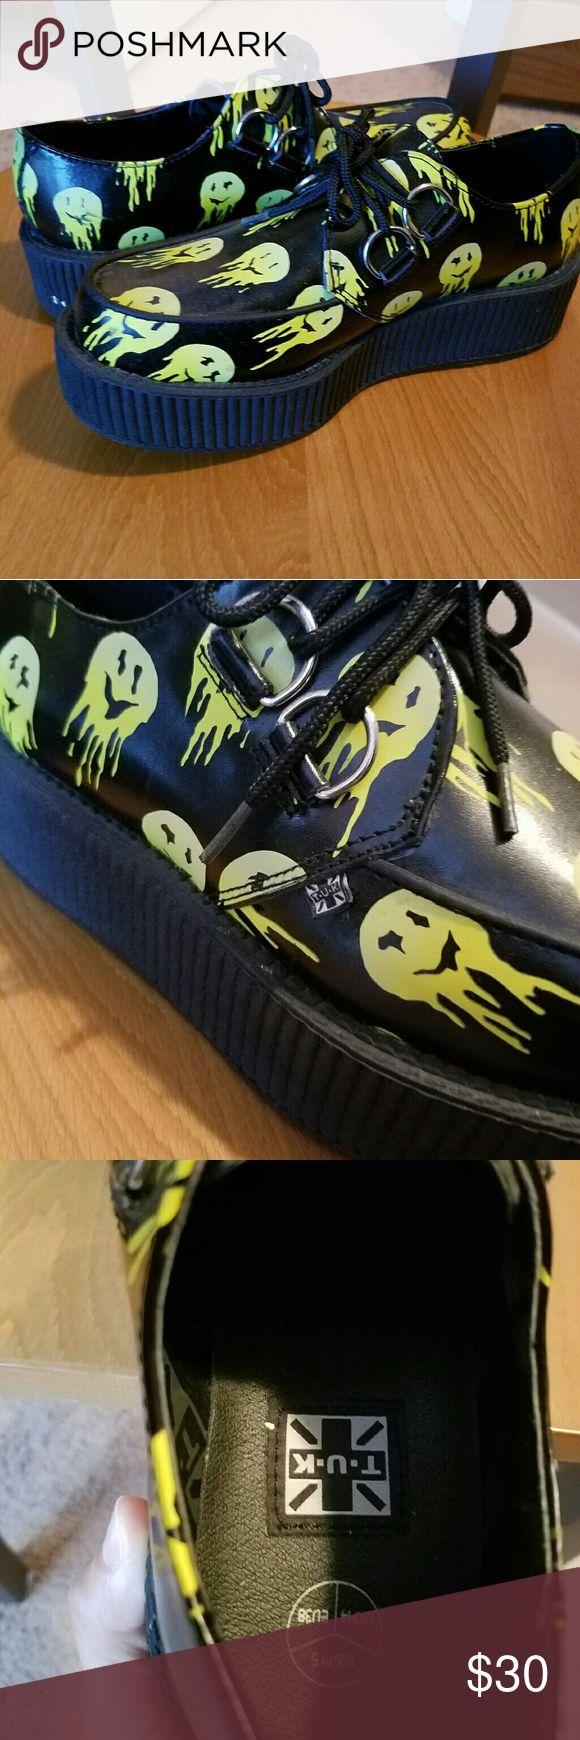 💀T.U.K. MELTED SMILEY FACE CREEPERS💀 💯💯AUTHENTIC T.U.K. CREEPERS  THESE CREEPERS ARE MADE WITH A PRINTED LEATHER UPPER AND CLASSIC VIVA MONDO ROUND TOE SOLE MELTED SMILEY FACE DESIGN👞 ONLY WORN COUPLE TIMES, ALL WEAR AND TEAR DISPLAYED IN IMAGES👌 t.u.k. Shoes